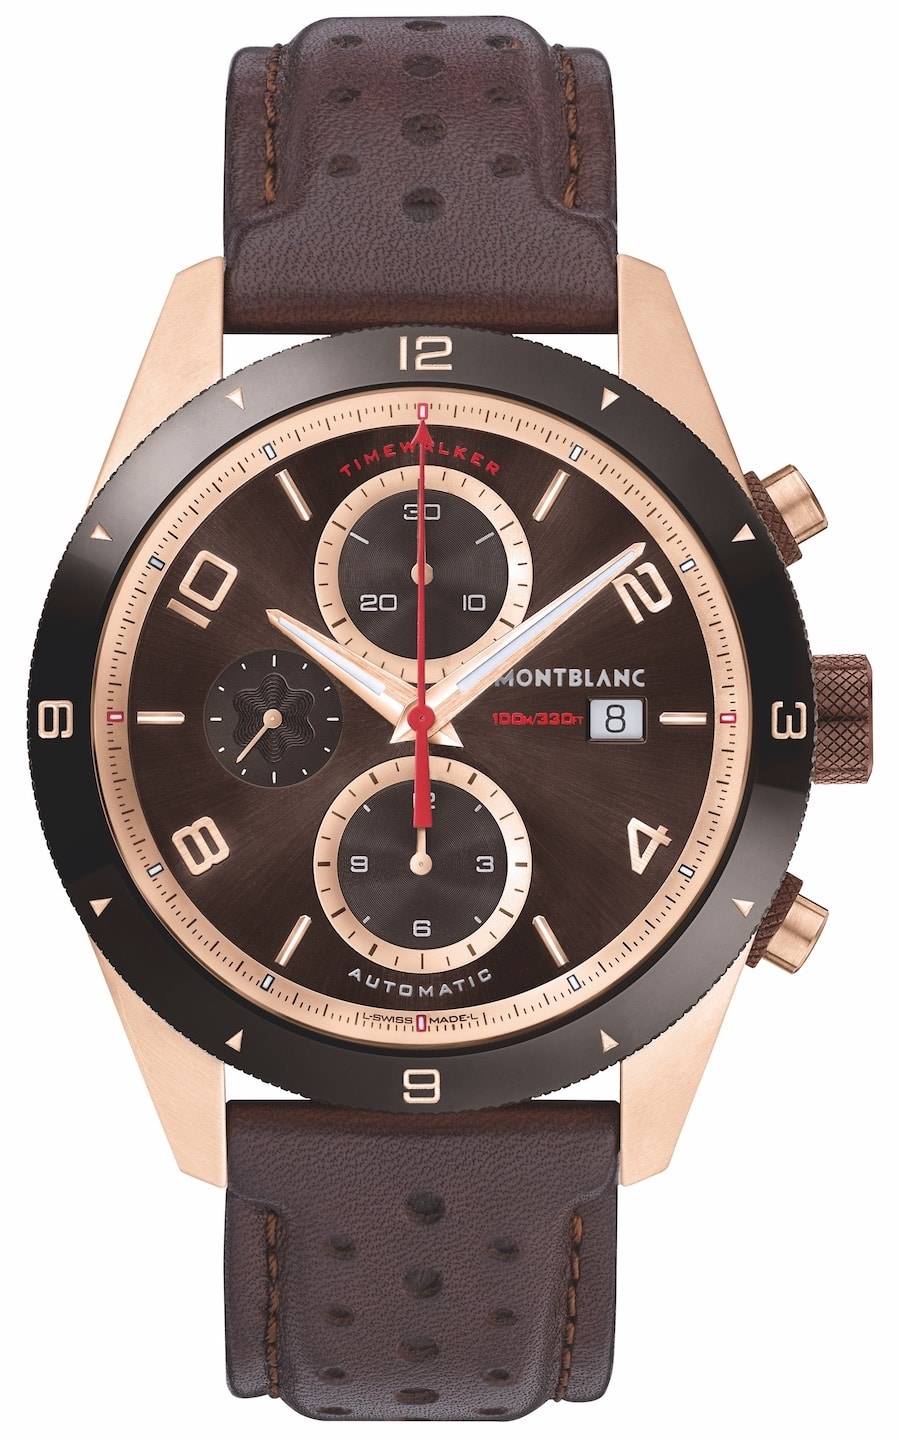 Montblanc: Timewalker Automatic Chronograph Rotgold